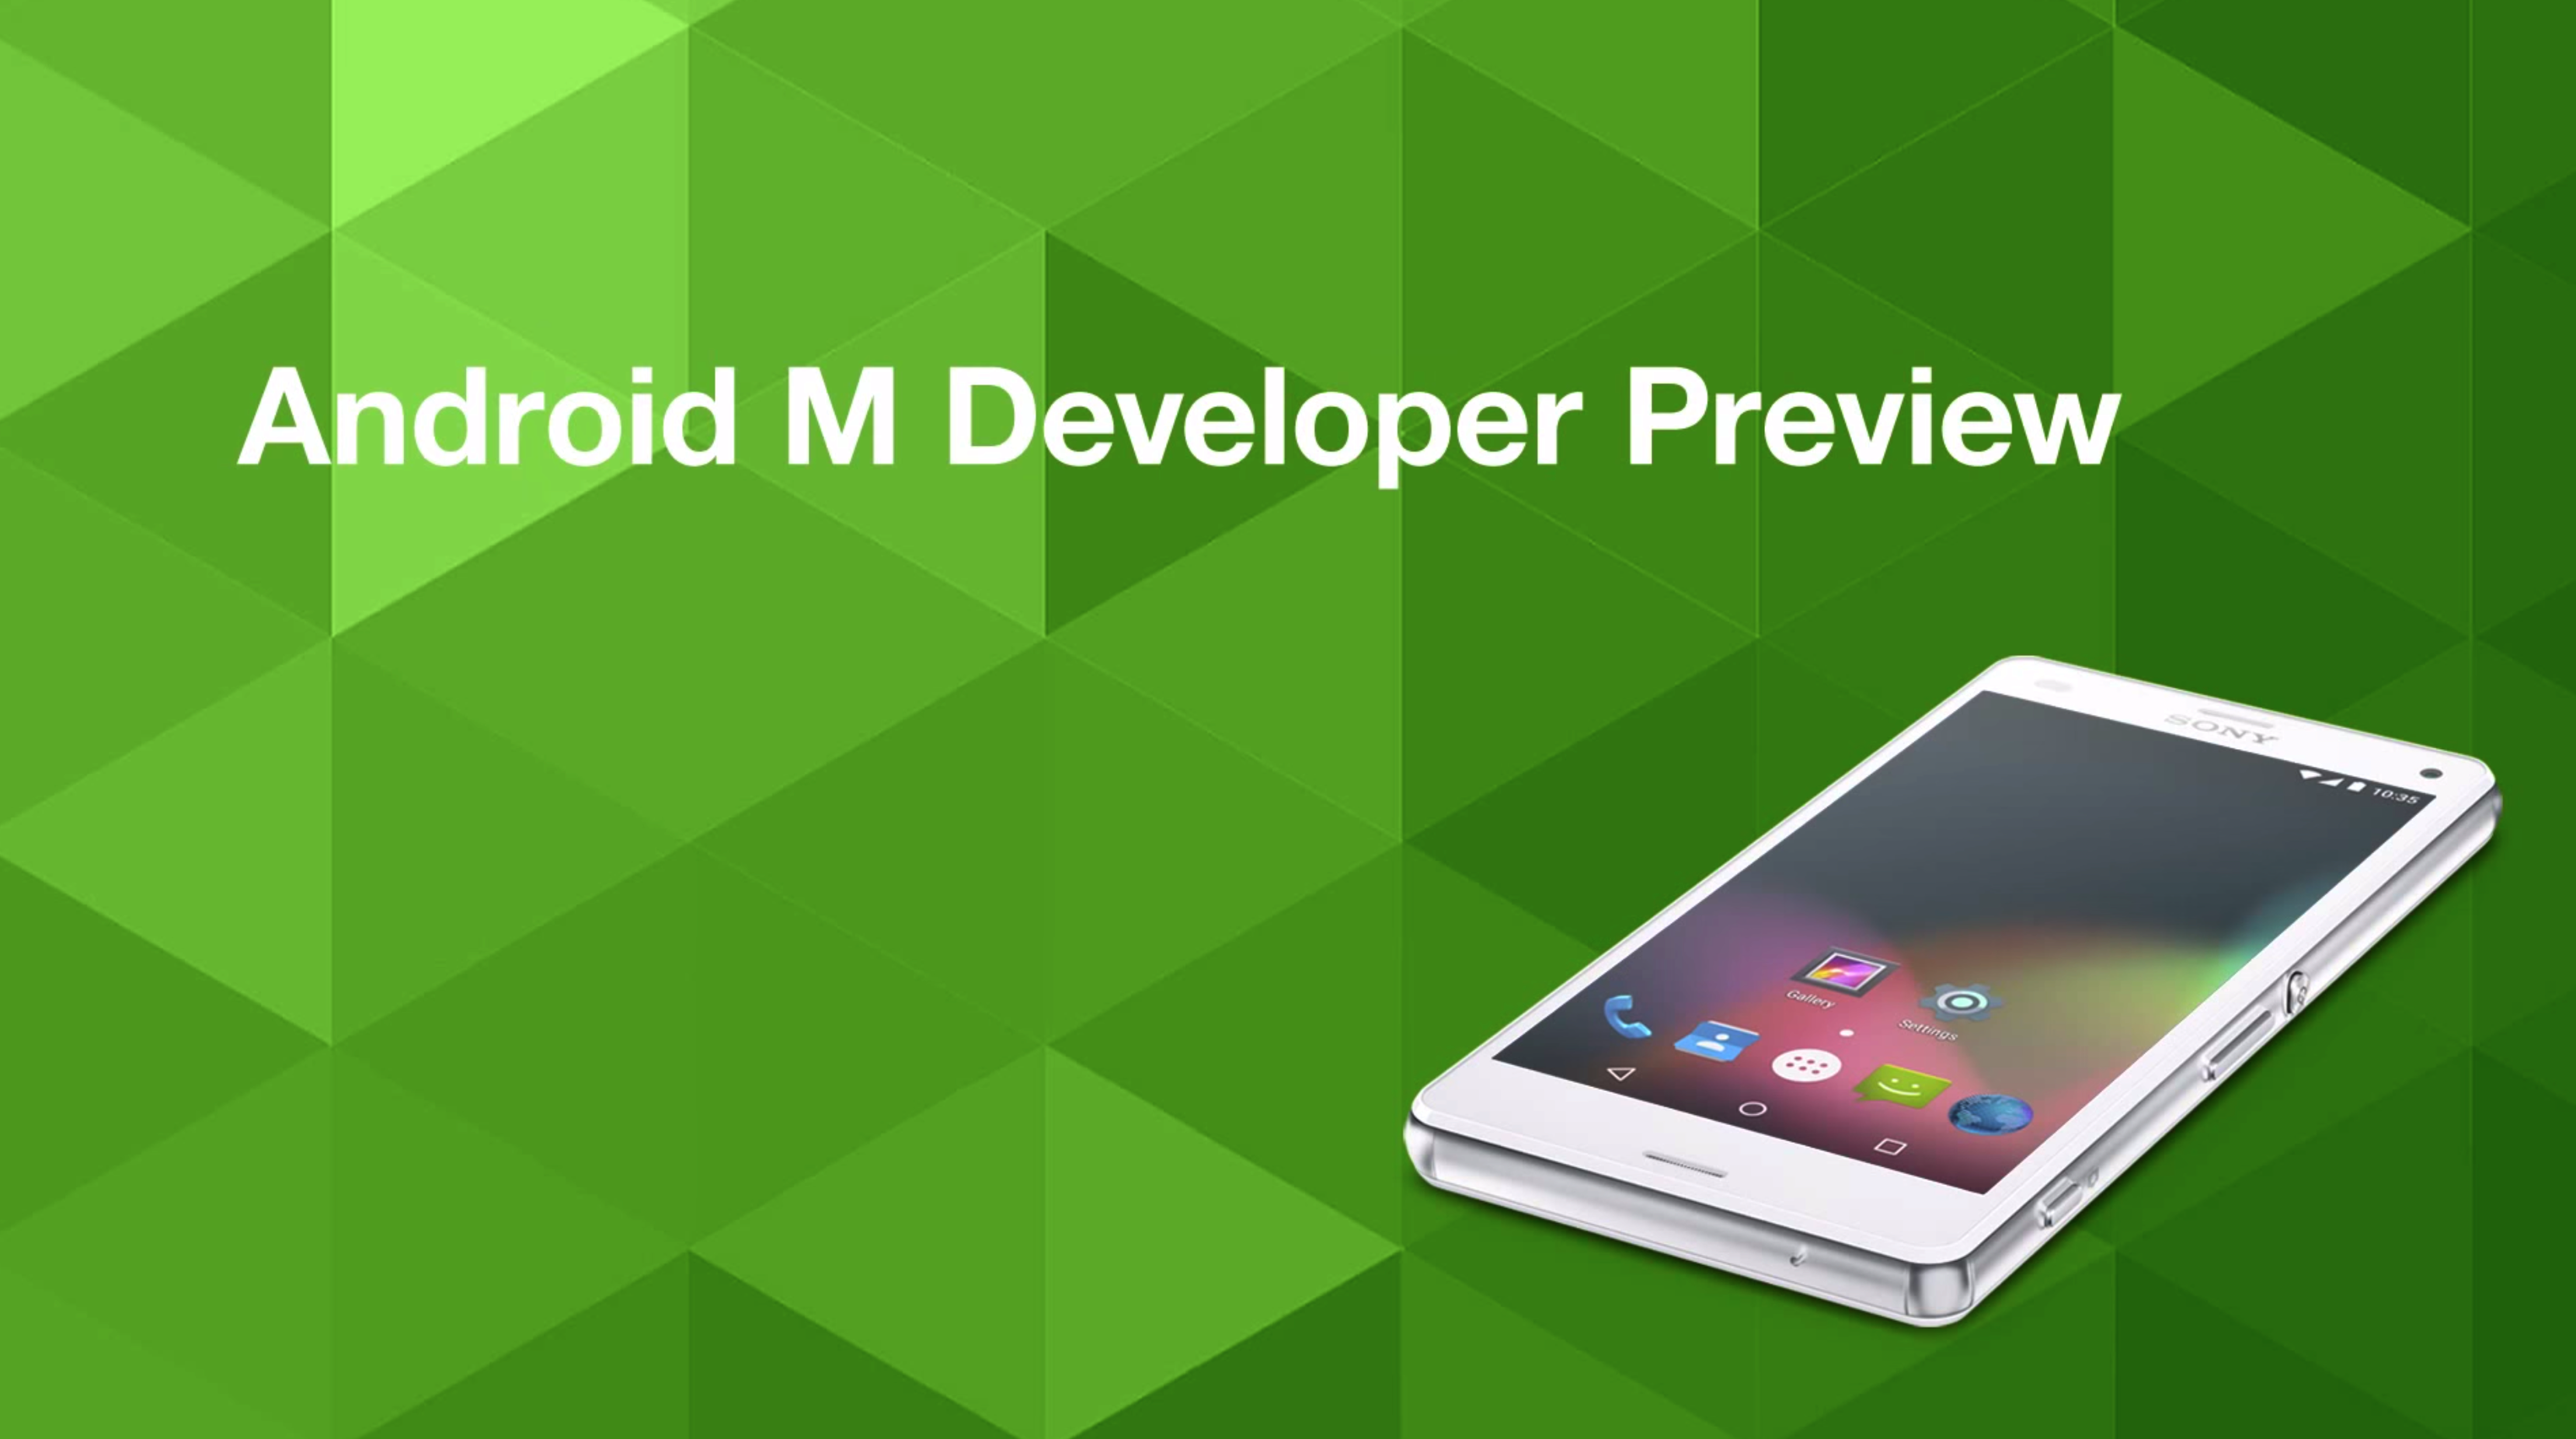 Android Mobile: Sony releases Android M Developer Preview ...